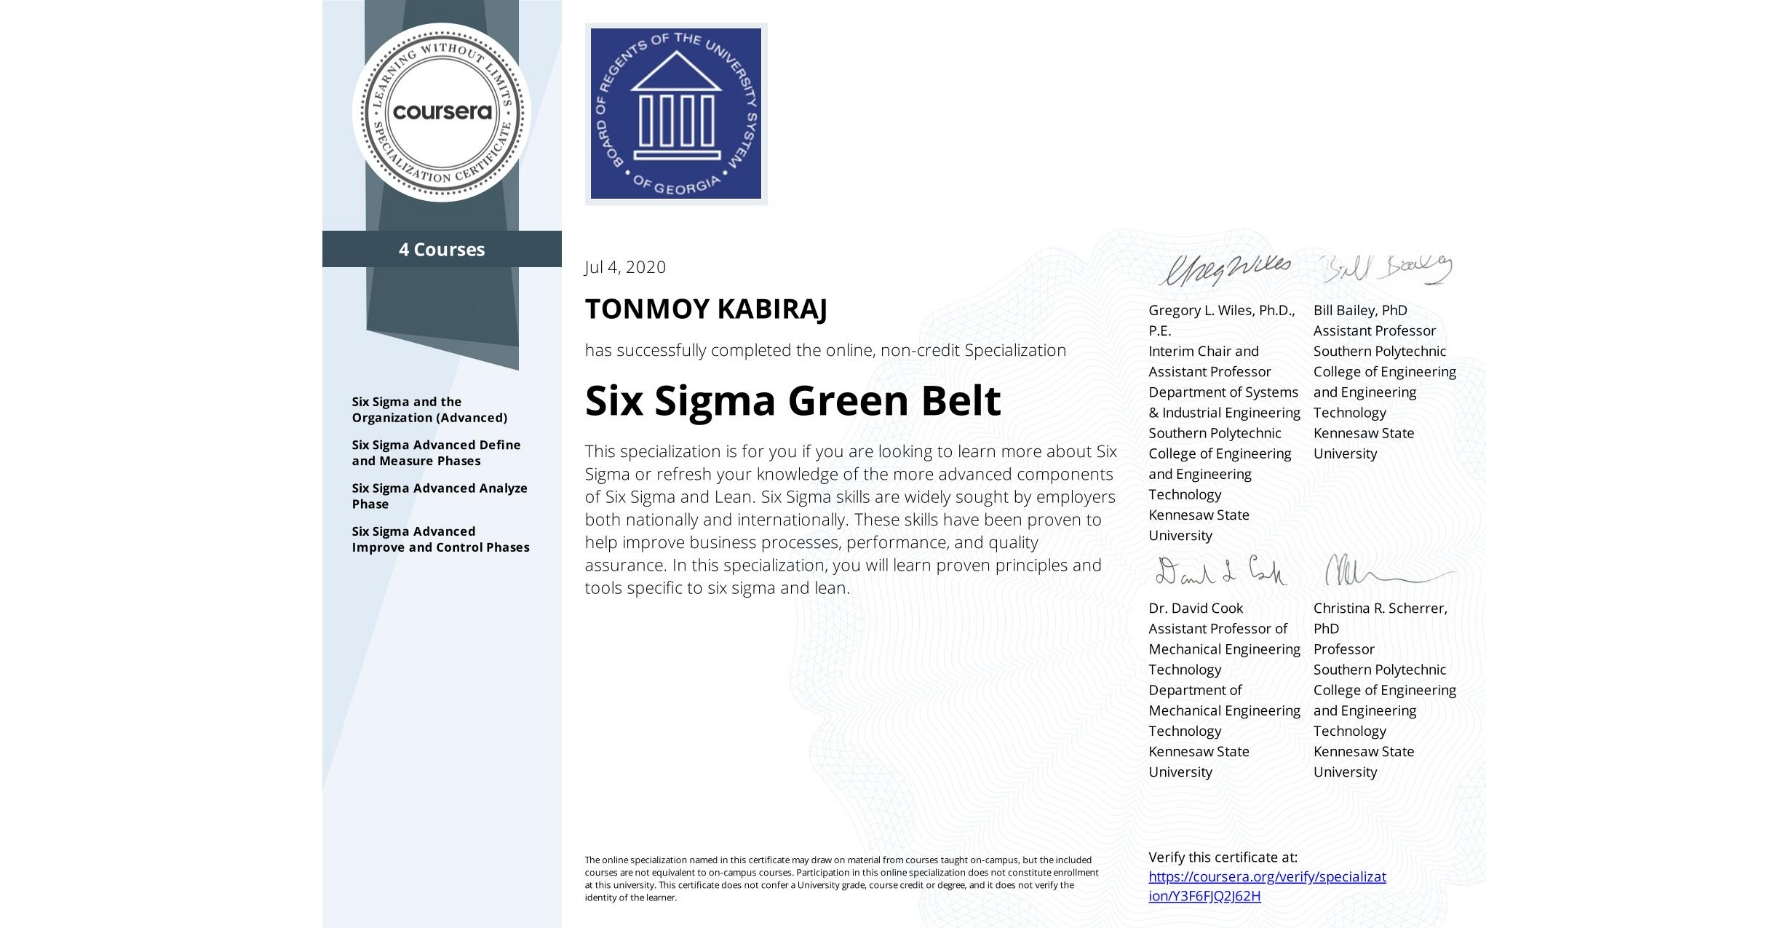 View certificate for TONMOY KABIRAJ, Six Sigma Green Belt, offered through Coursera.  This specialization is for you if you are looking to learn more about Six Sigma or refresh your knowledge of the more advanced components of Six Sigma and Lean. Six Sigma skills are widely sought by employers both nationally and internationally. These skills have been proven to help improve business processes, performance, and quality assurance.  In this specialization, you will learn proven principles and tools specific to six sigma and lean.